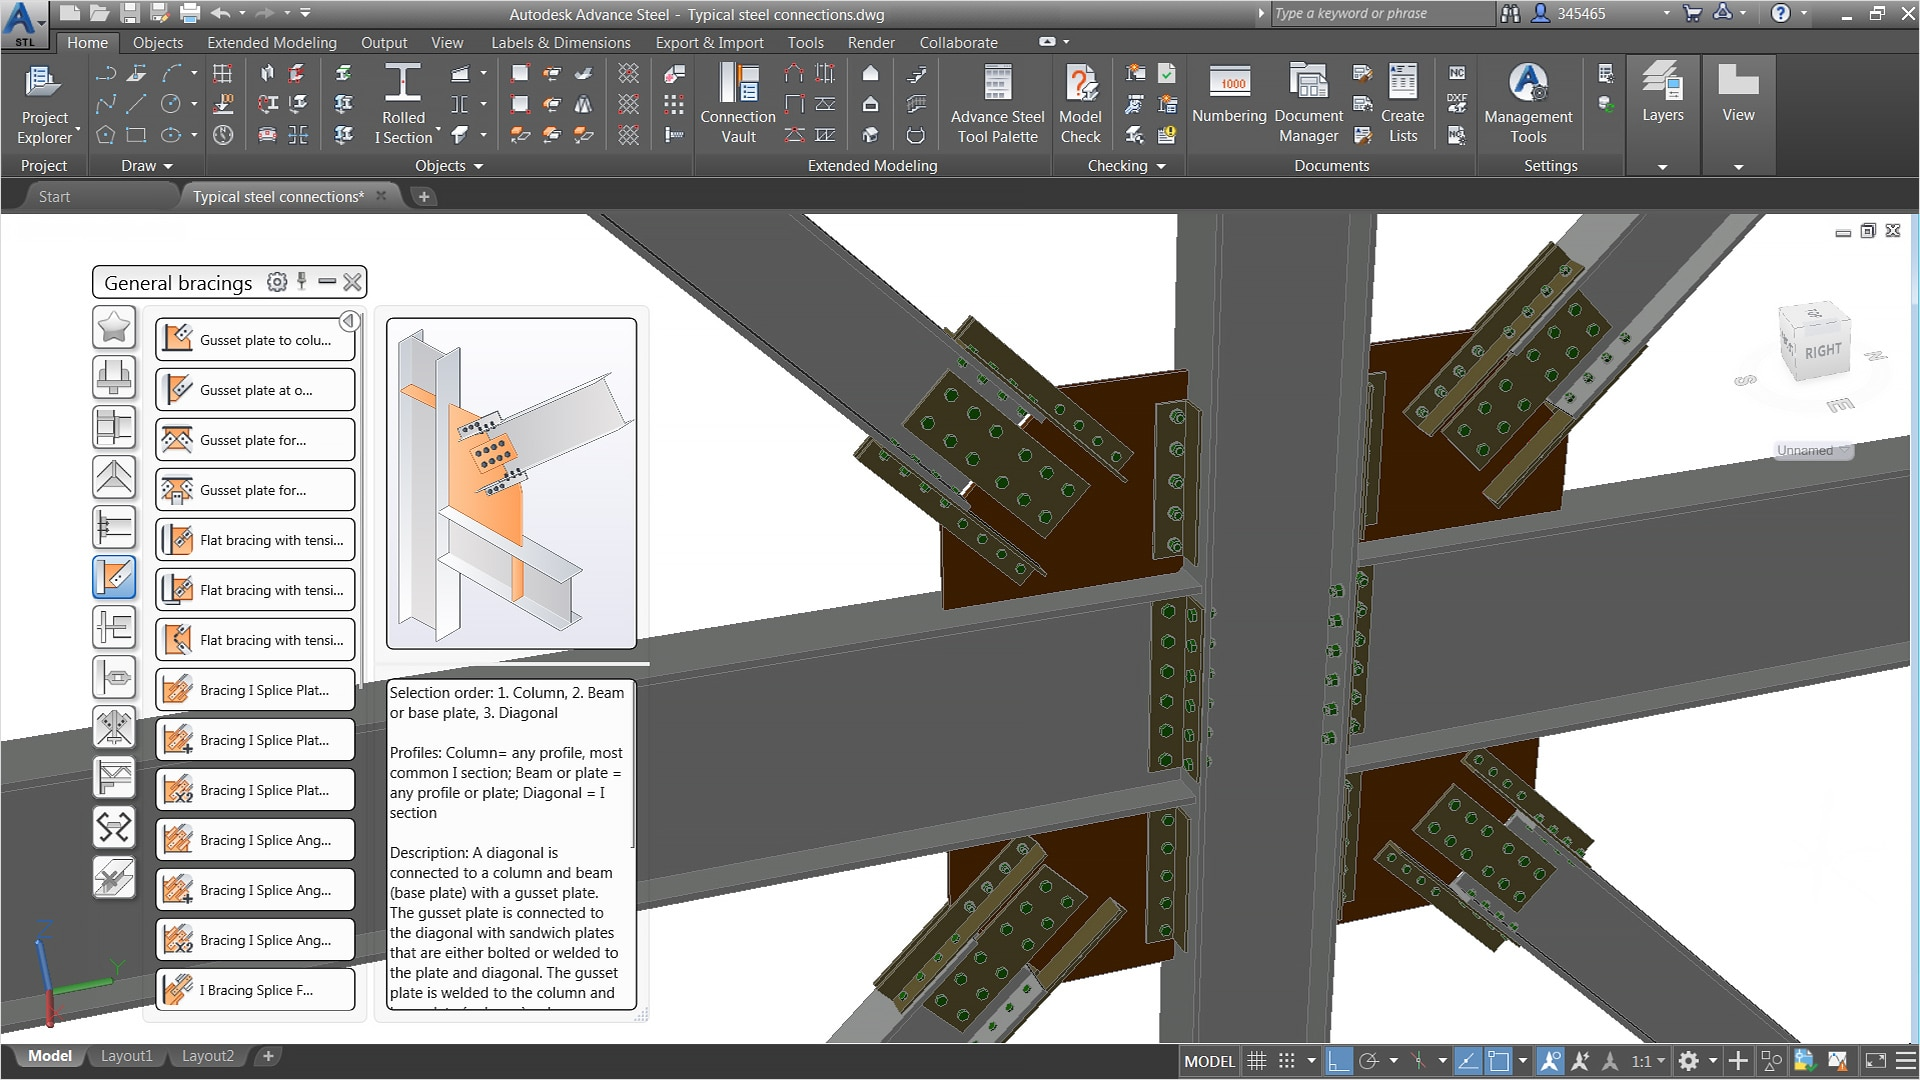 2d Drafting And Detailing : Advance steel steel detailing software autodesk